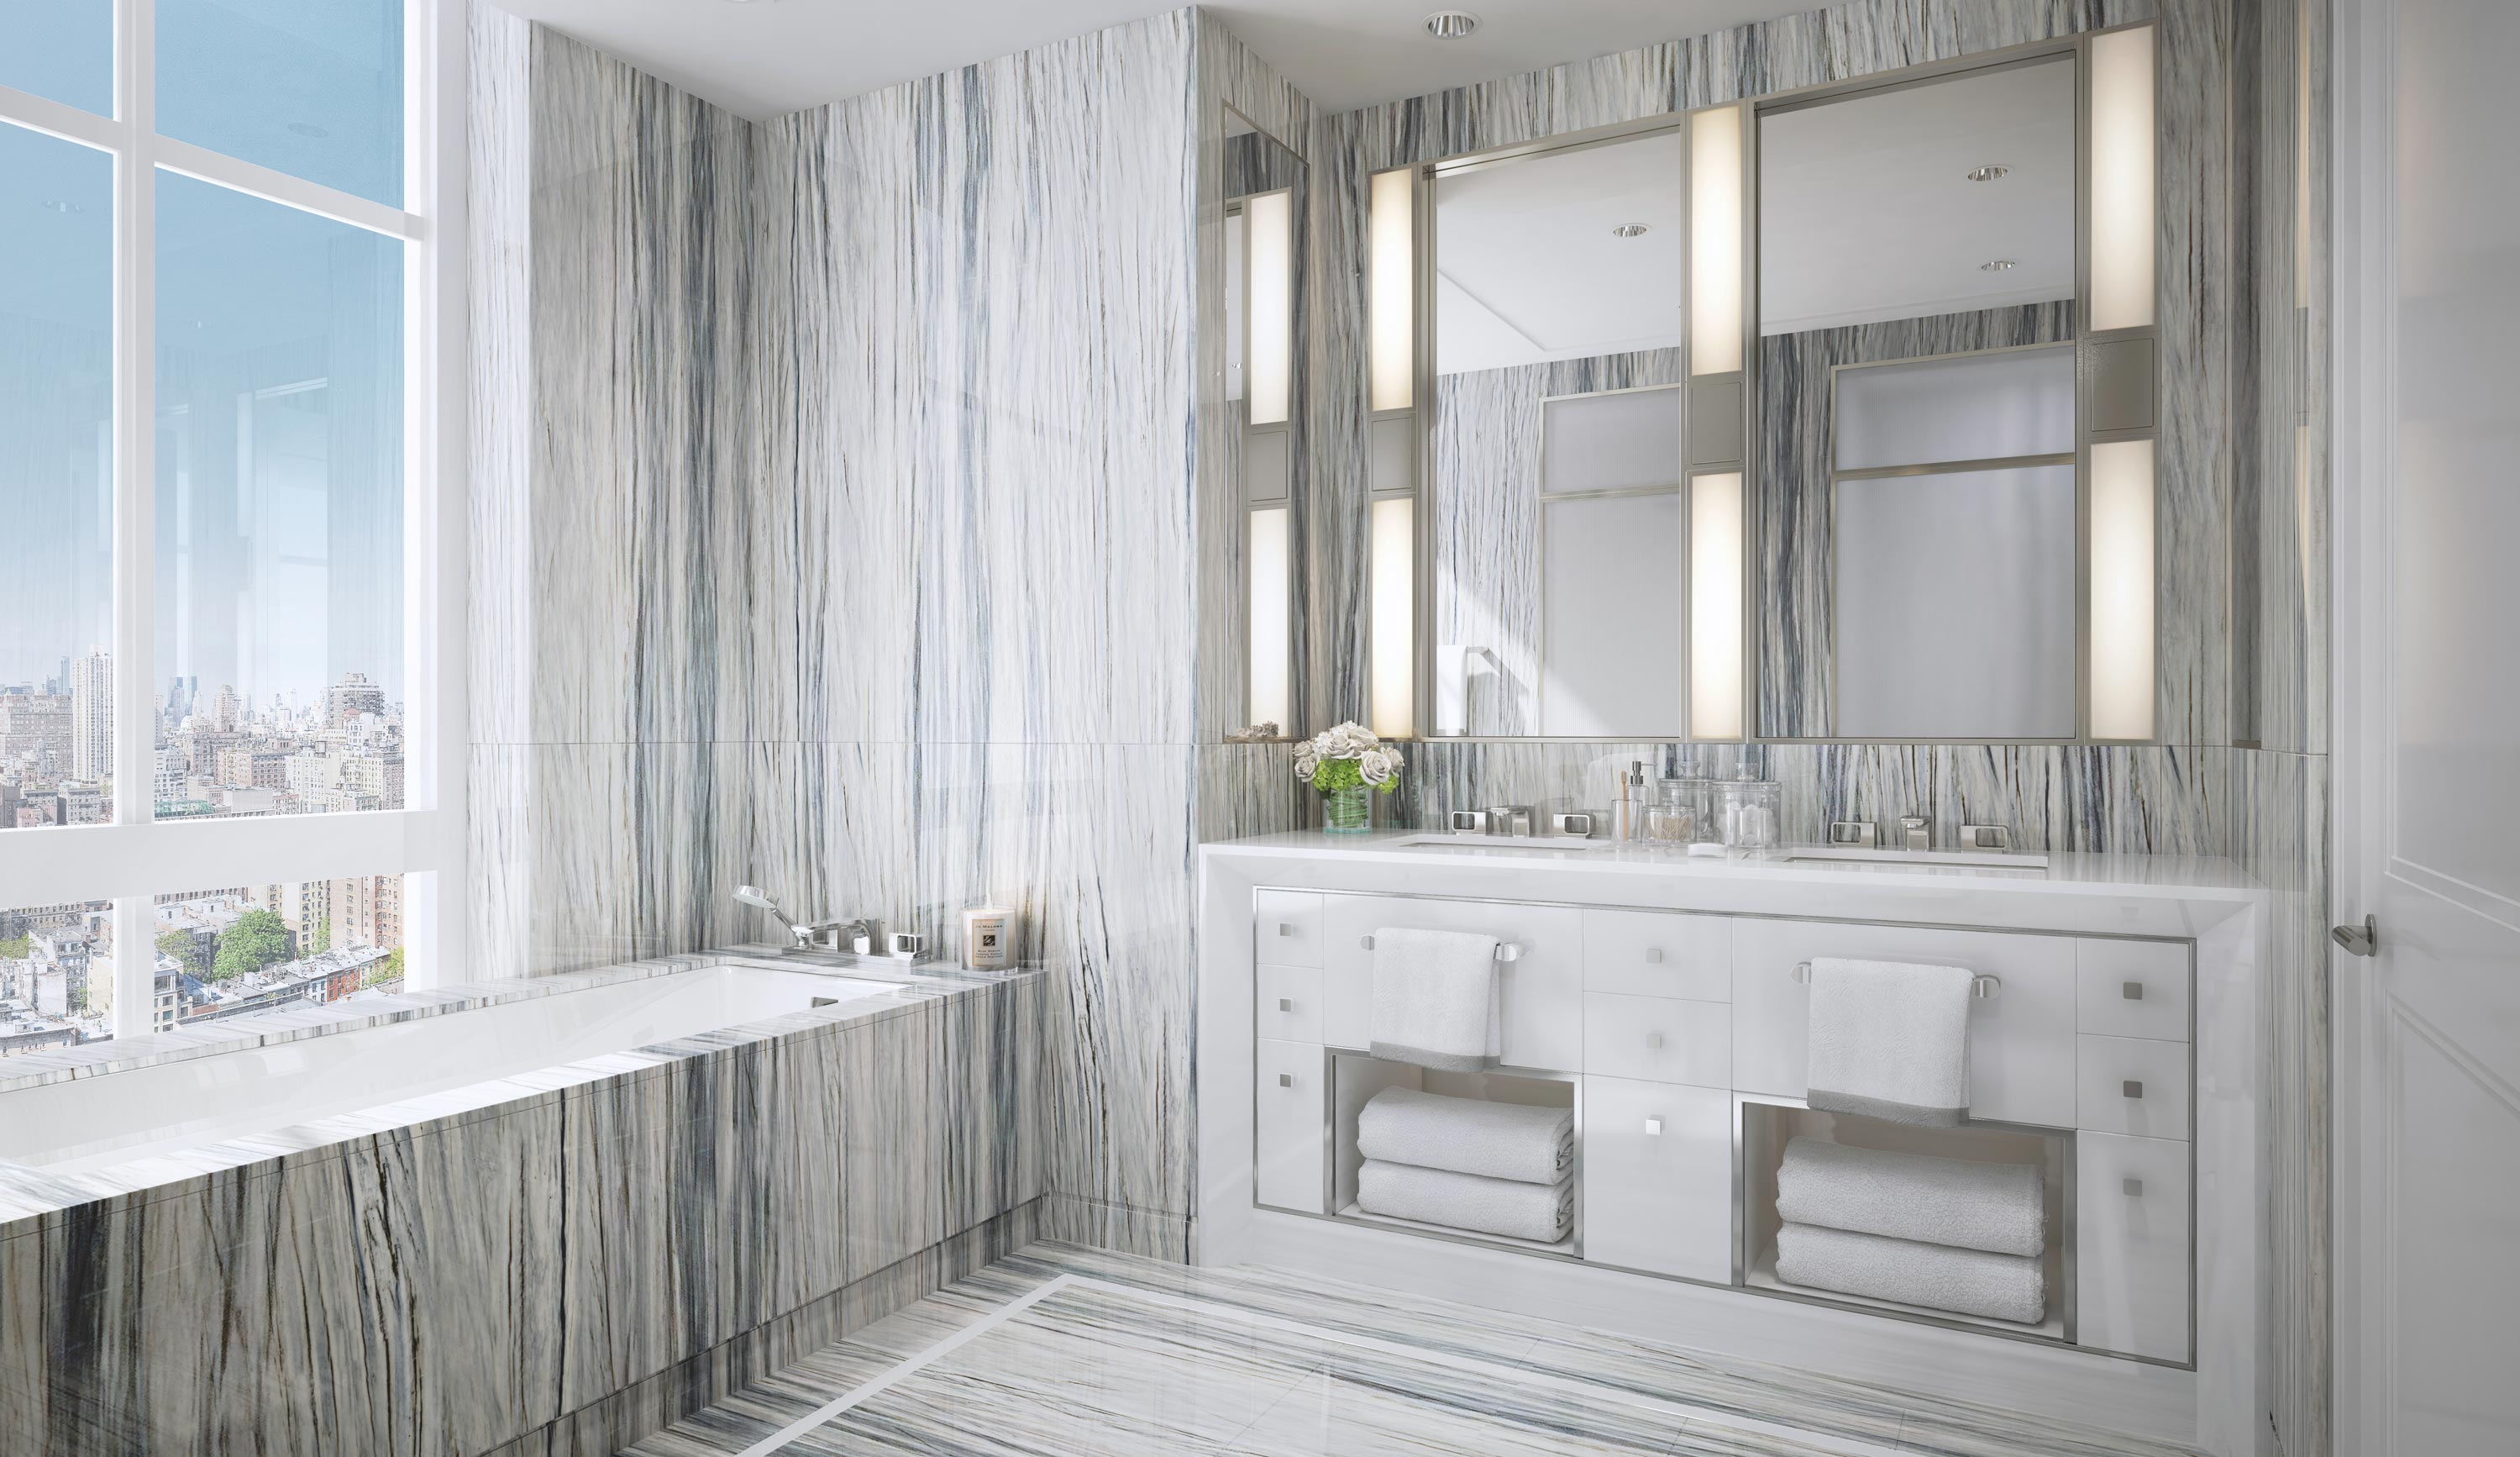 Luxury Bathrooms Kent luxury upper east side homes for sale | the kent – residences